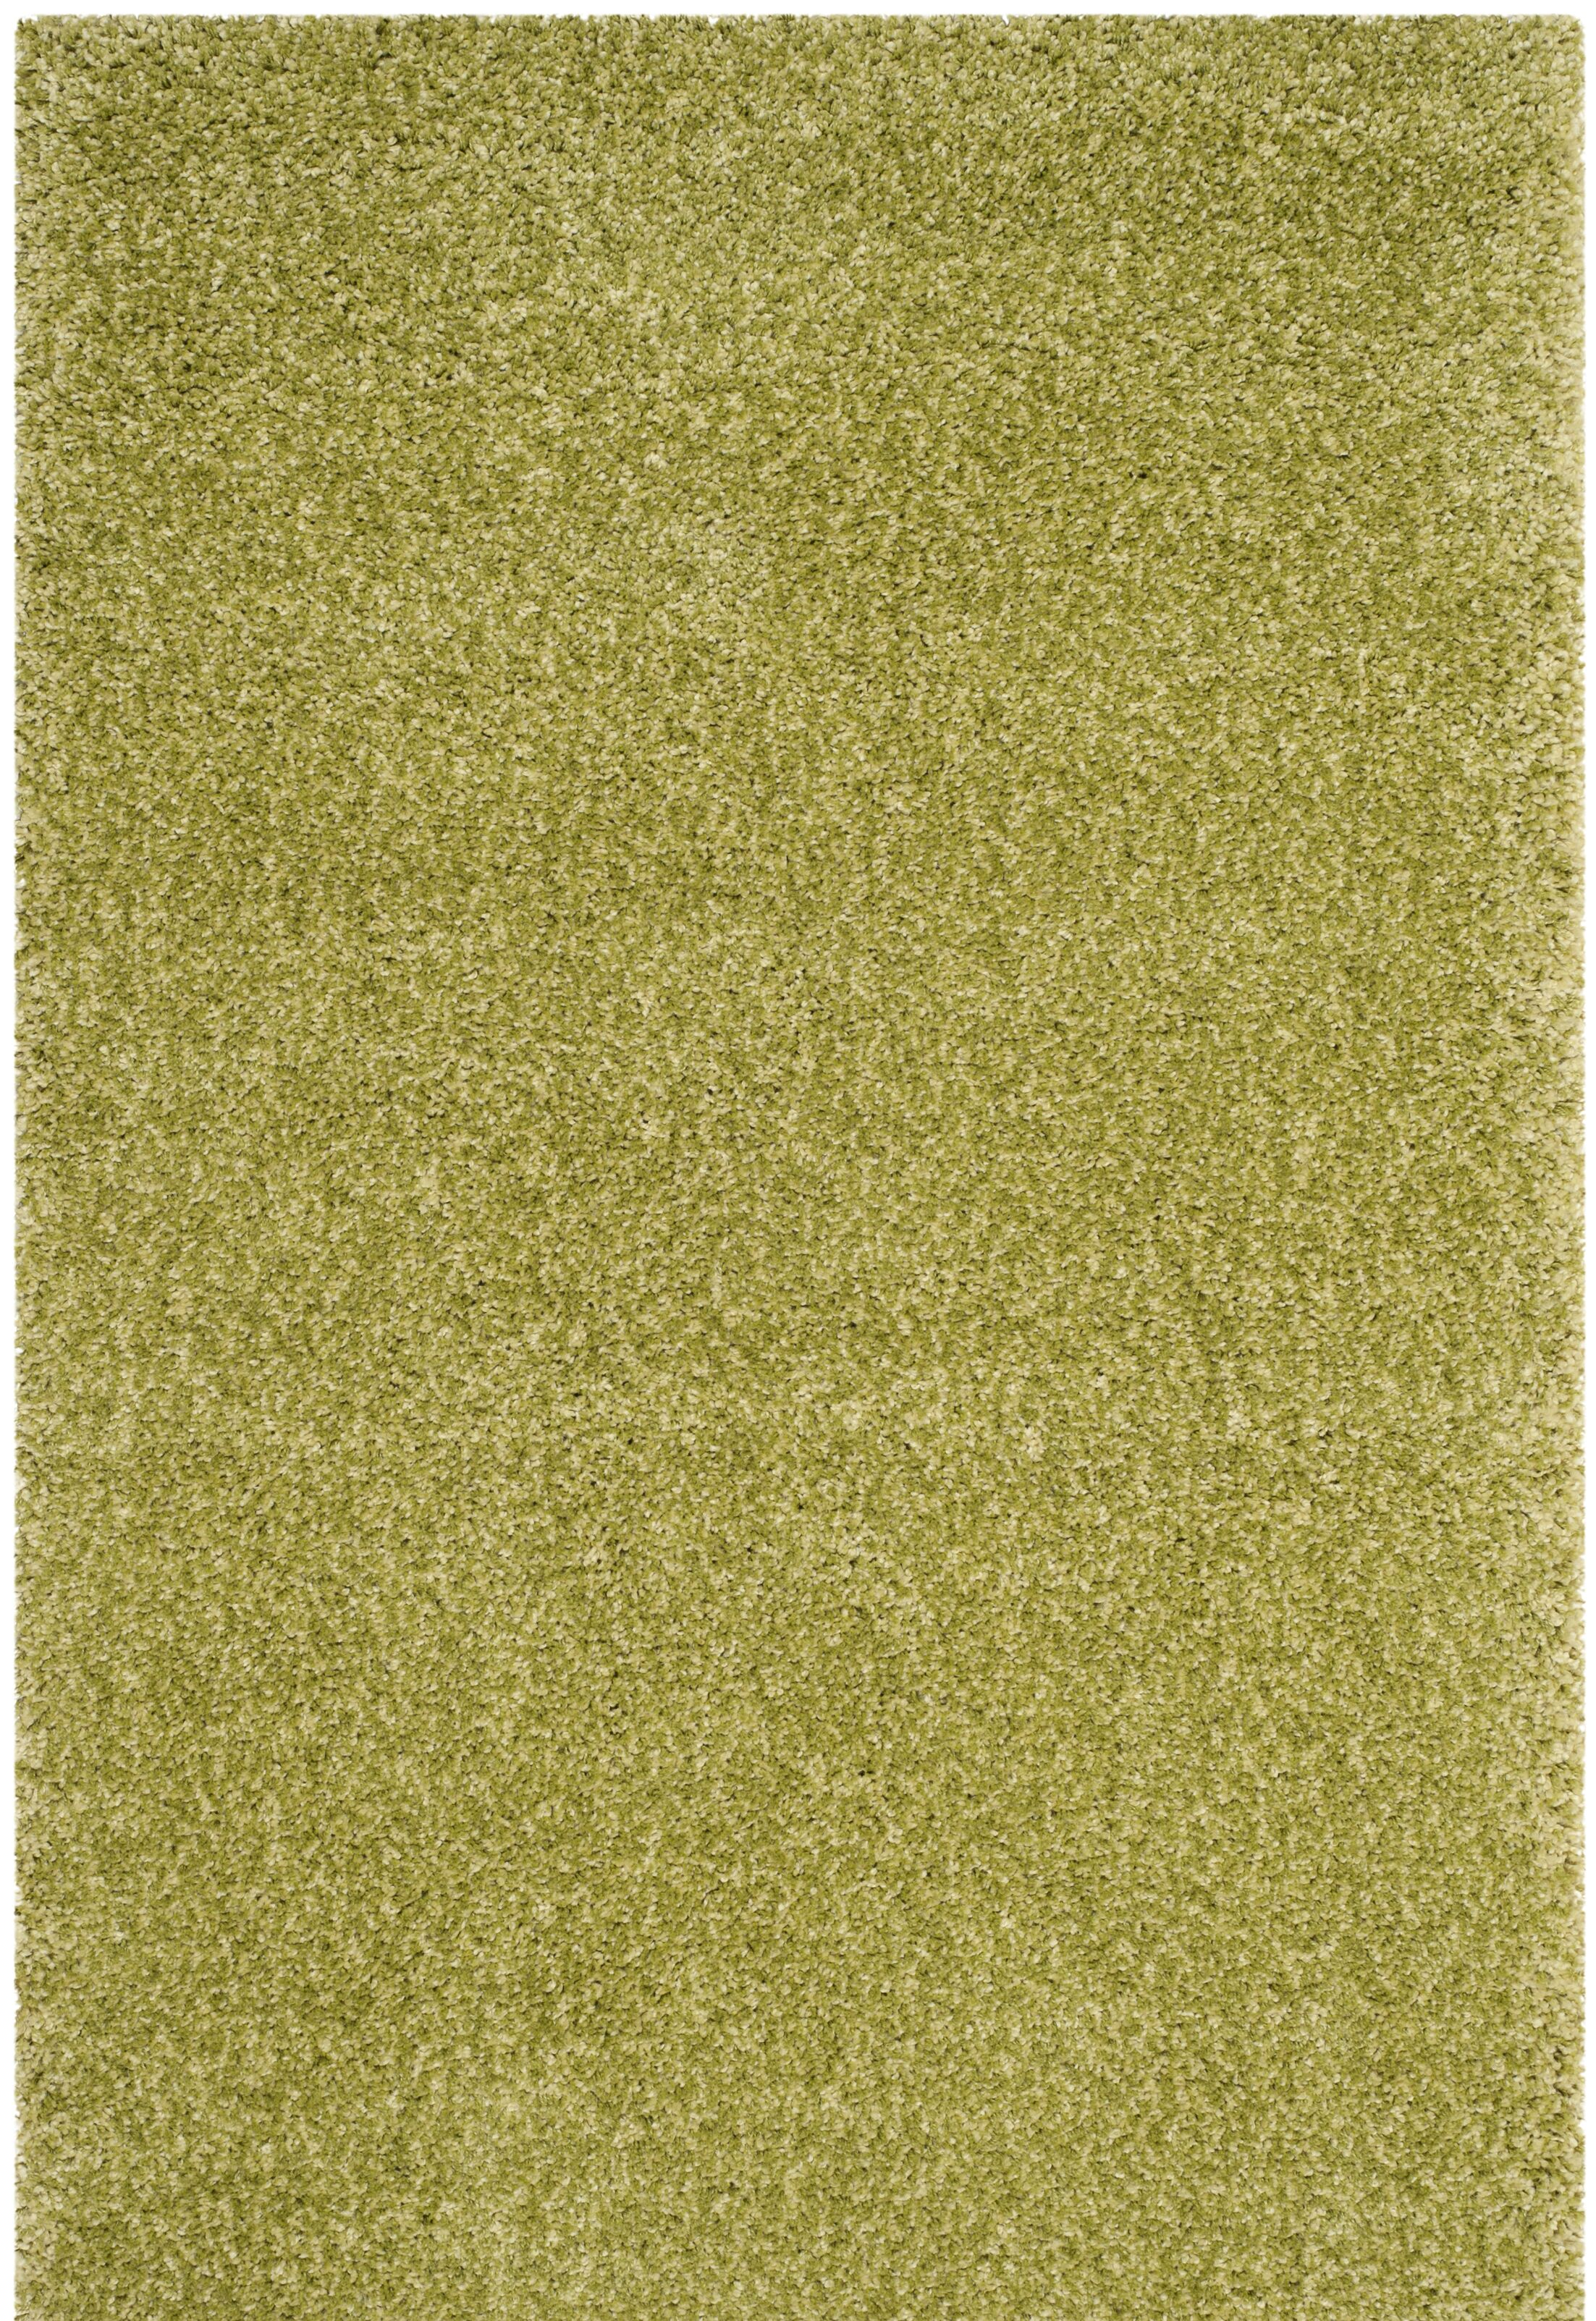 Brickner Green Area Rug Rug Size: 6'-7